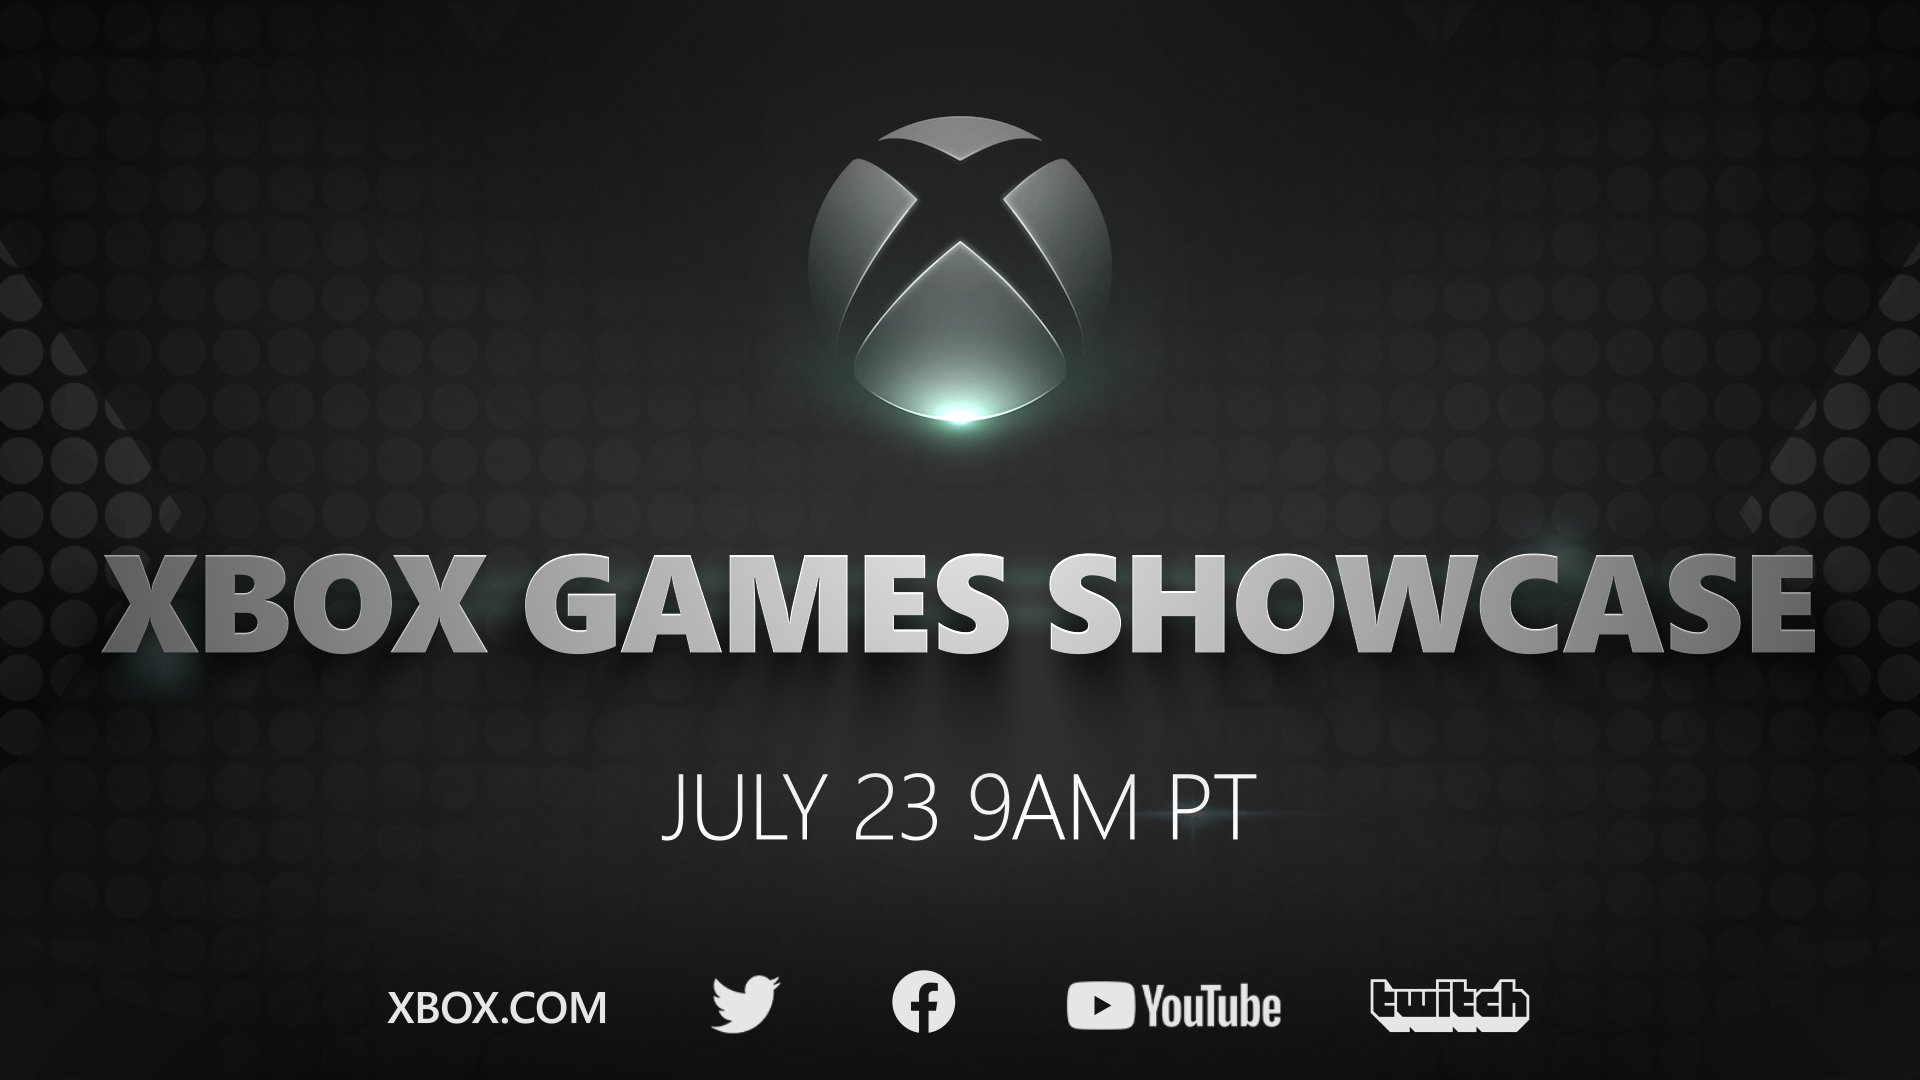 Microsoft Sets a Date for the Xbox Games Showcase